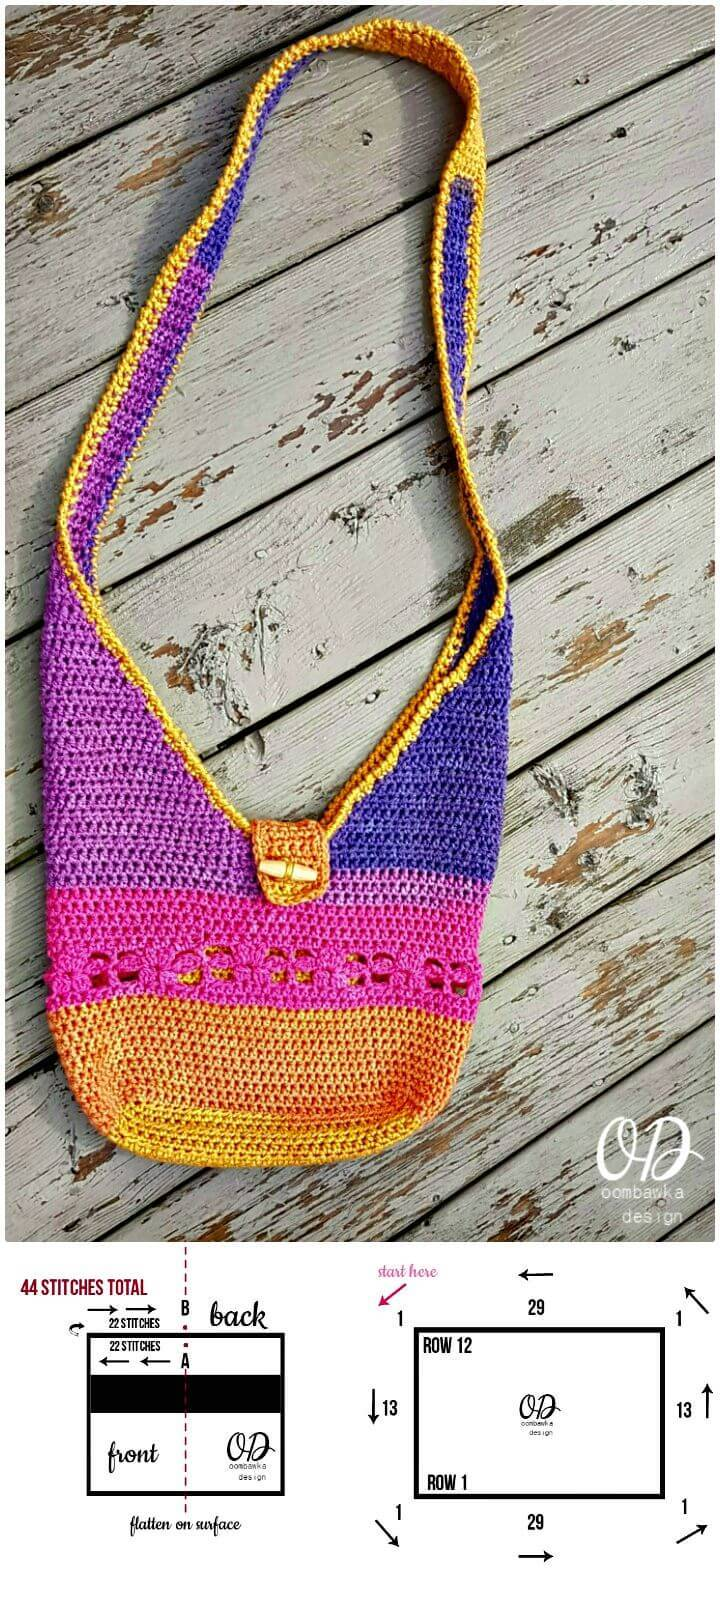 Easy Free Crochet Tropical Paradise Crossbody Bag - Caron Cakes Yarn